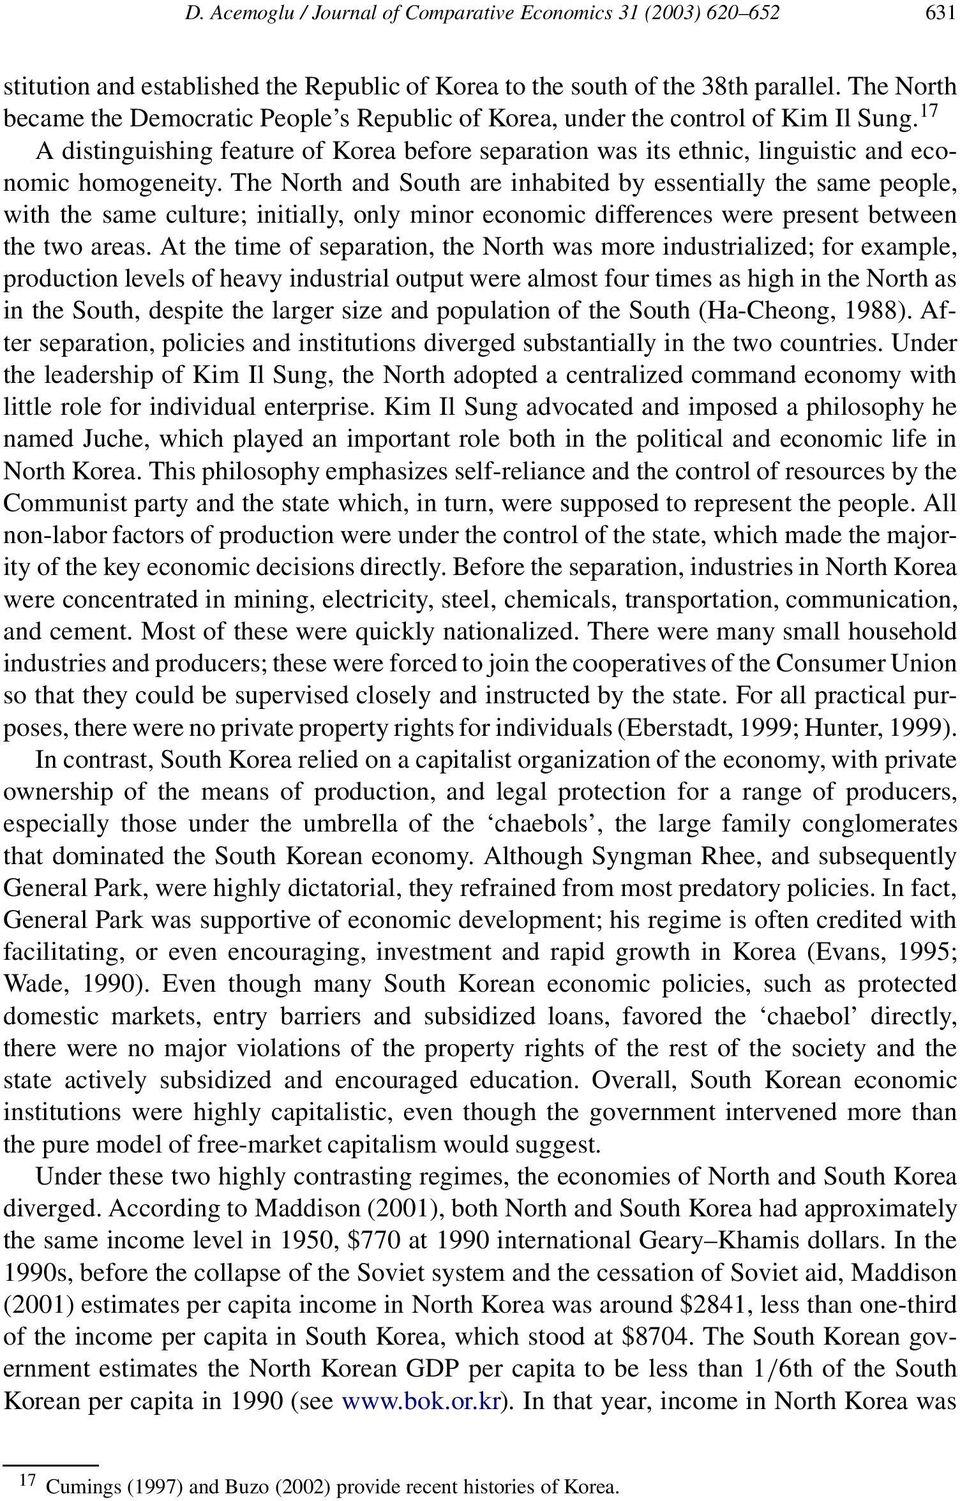 17 A distinguishing feature of Korea before separation was its ethnic, linguistic and economic homogeneity.